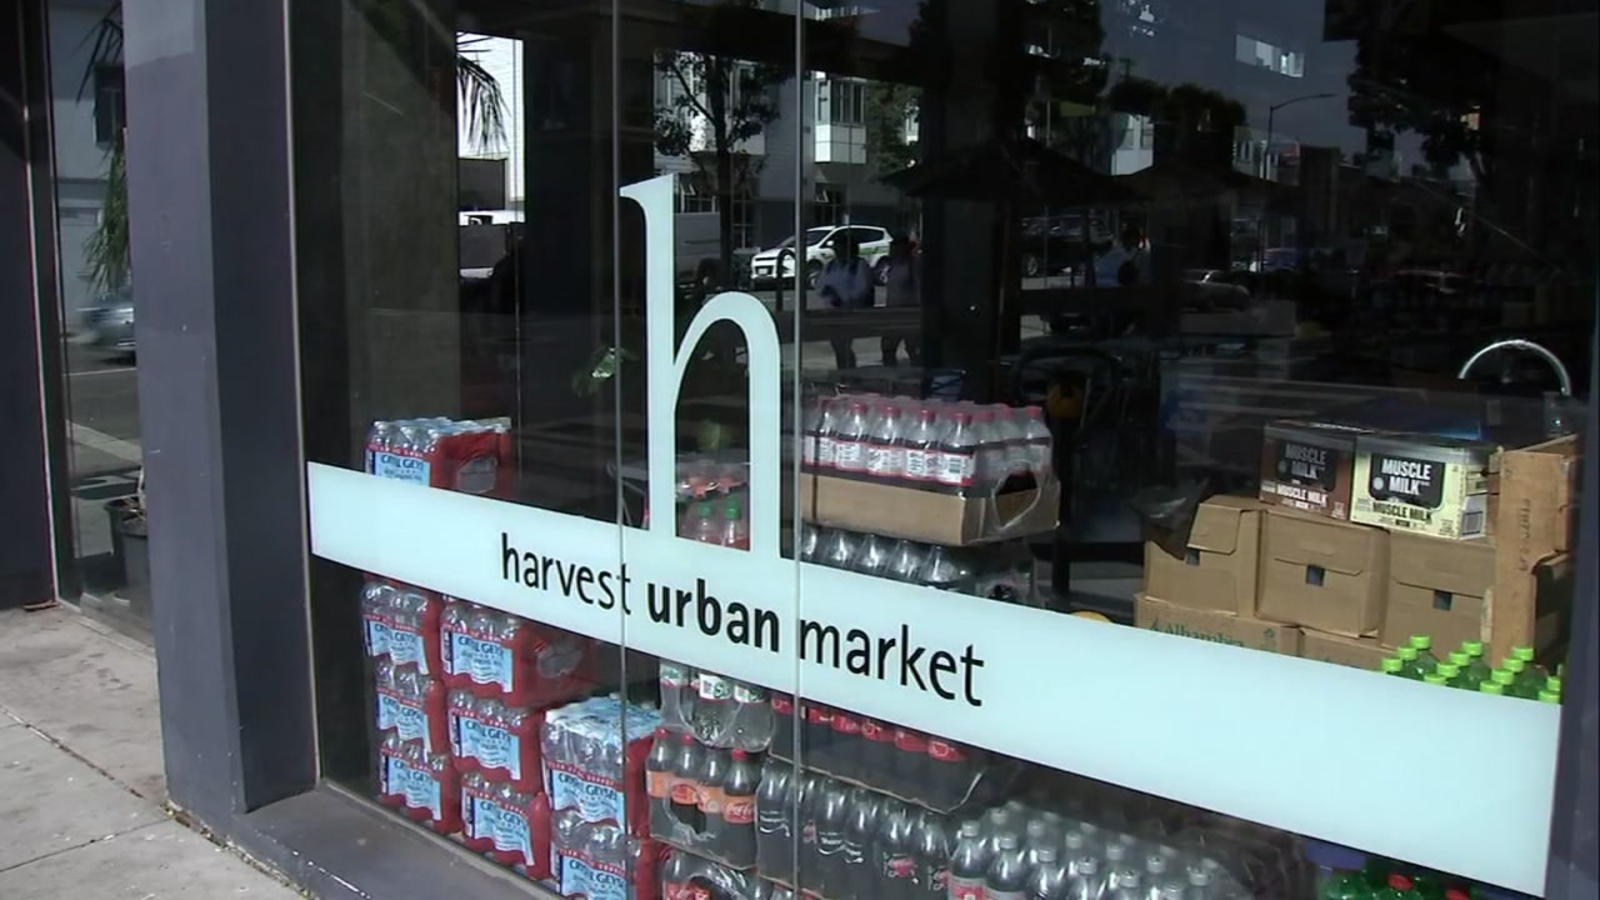 South of Market store owner says he's under siege from violent people and considering closing shop